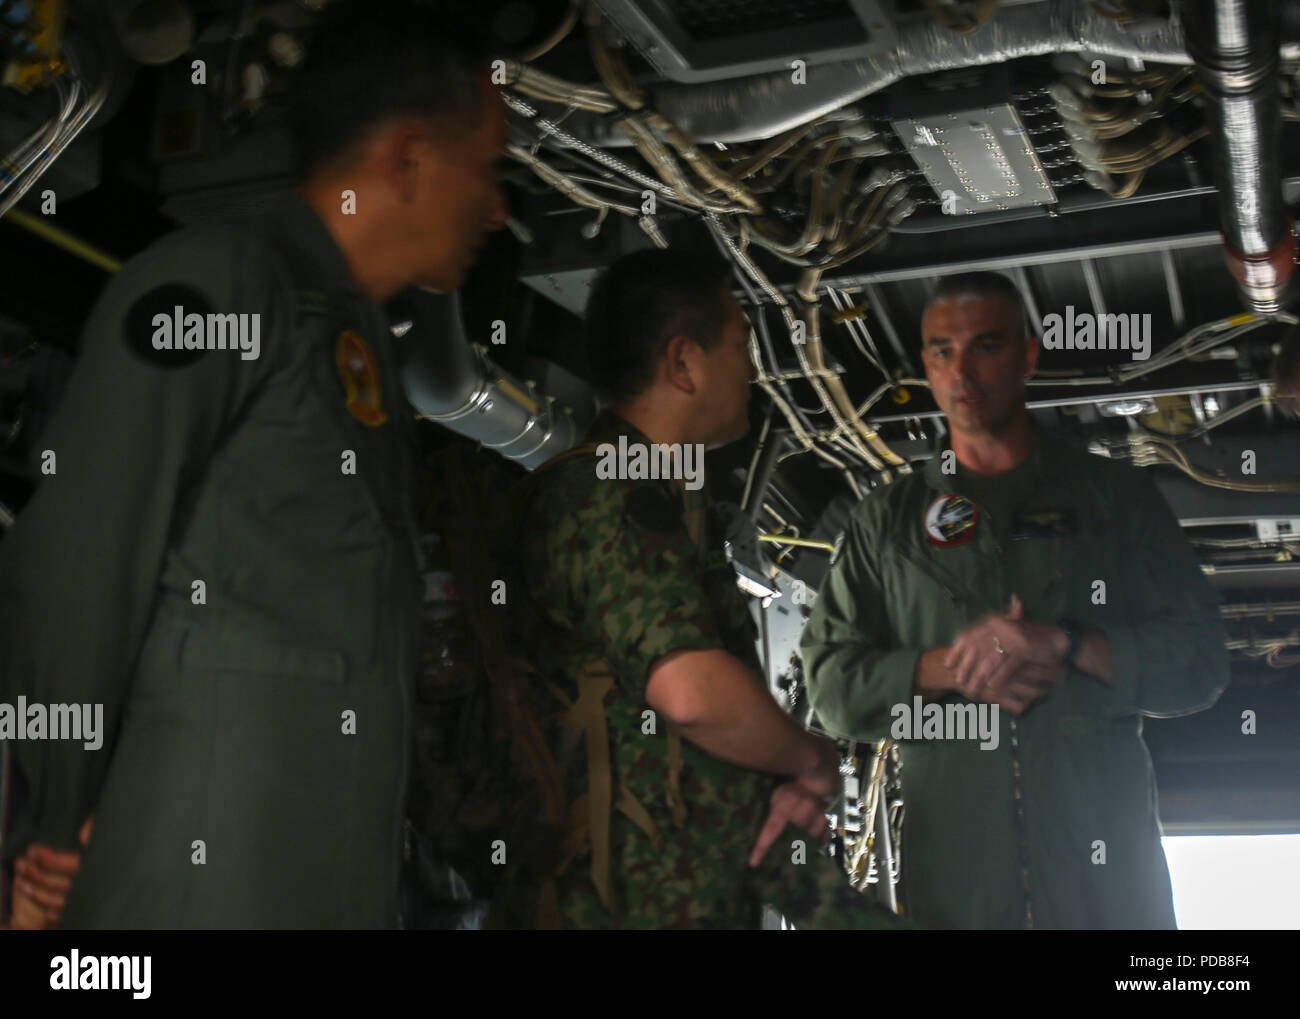 Lieutenant Col. Joshua M. Smith, commanding officer of Marine Medium Tiltrotor Training Squadron-204 with 2nd Marine Aircraft Wing, goes over the schematics of the MV-22 Osprey with Maj. Gen. Yoshiki Adachi, Defense and Military Attaché, Embassy of Japan, on Marine Corps Air Station New River, N.C., Aug. 2, 2018. Adachi is visiting the Marines and Sailors of II Marine Expeditionary Force to continue to build relationships and understand II MEF's mission and activities in the western hemisphere in regards to its amphibious capabilities and operations. (U.S. Marine Corps photo by Lance Cpl. Samu - Stock Image